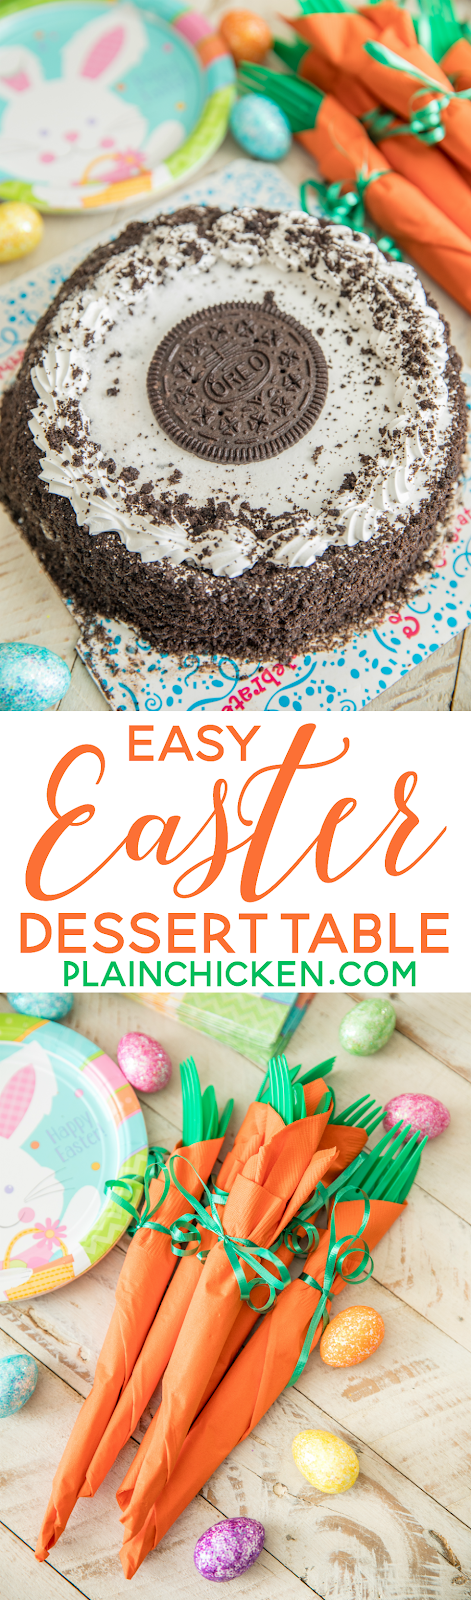 Easy Easter Dessert Table with festive Carrot Napkins and an I Love Ice Cream Carvel® Oreo® Ice Cream Cake. Make Easter dessert a breeze with this yummy ice cream cake! Cakes are available nationwide in the freezer or bakery section of the grocery store. Make sure your Easter table is festive and make these adorable and easy Carrot Napkins bundles.Great way for the kids to help set the table. GIF tutorial included #IceCreamCakeBreak #ad #Easter #table #carrotnapkins